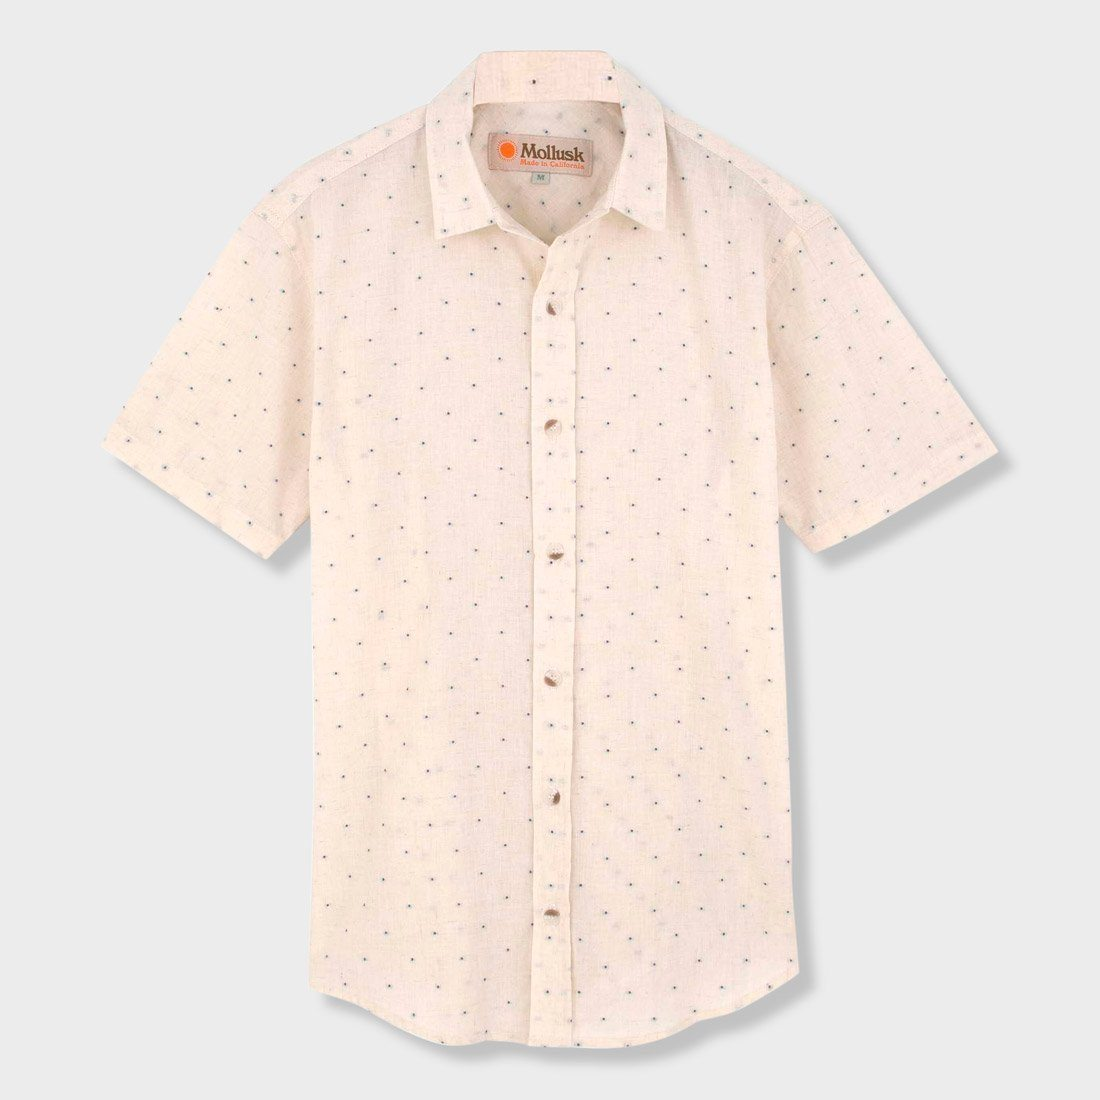 Mollusk Summer Shirt Natural/ Blue Dobby